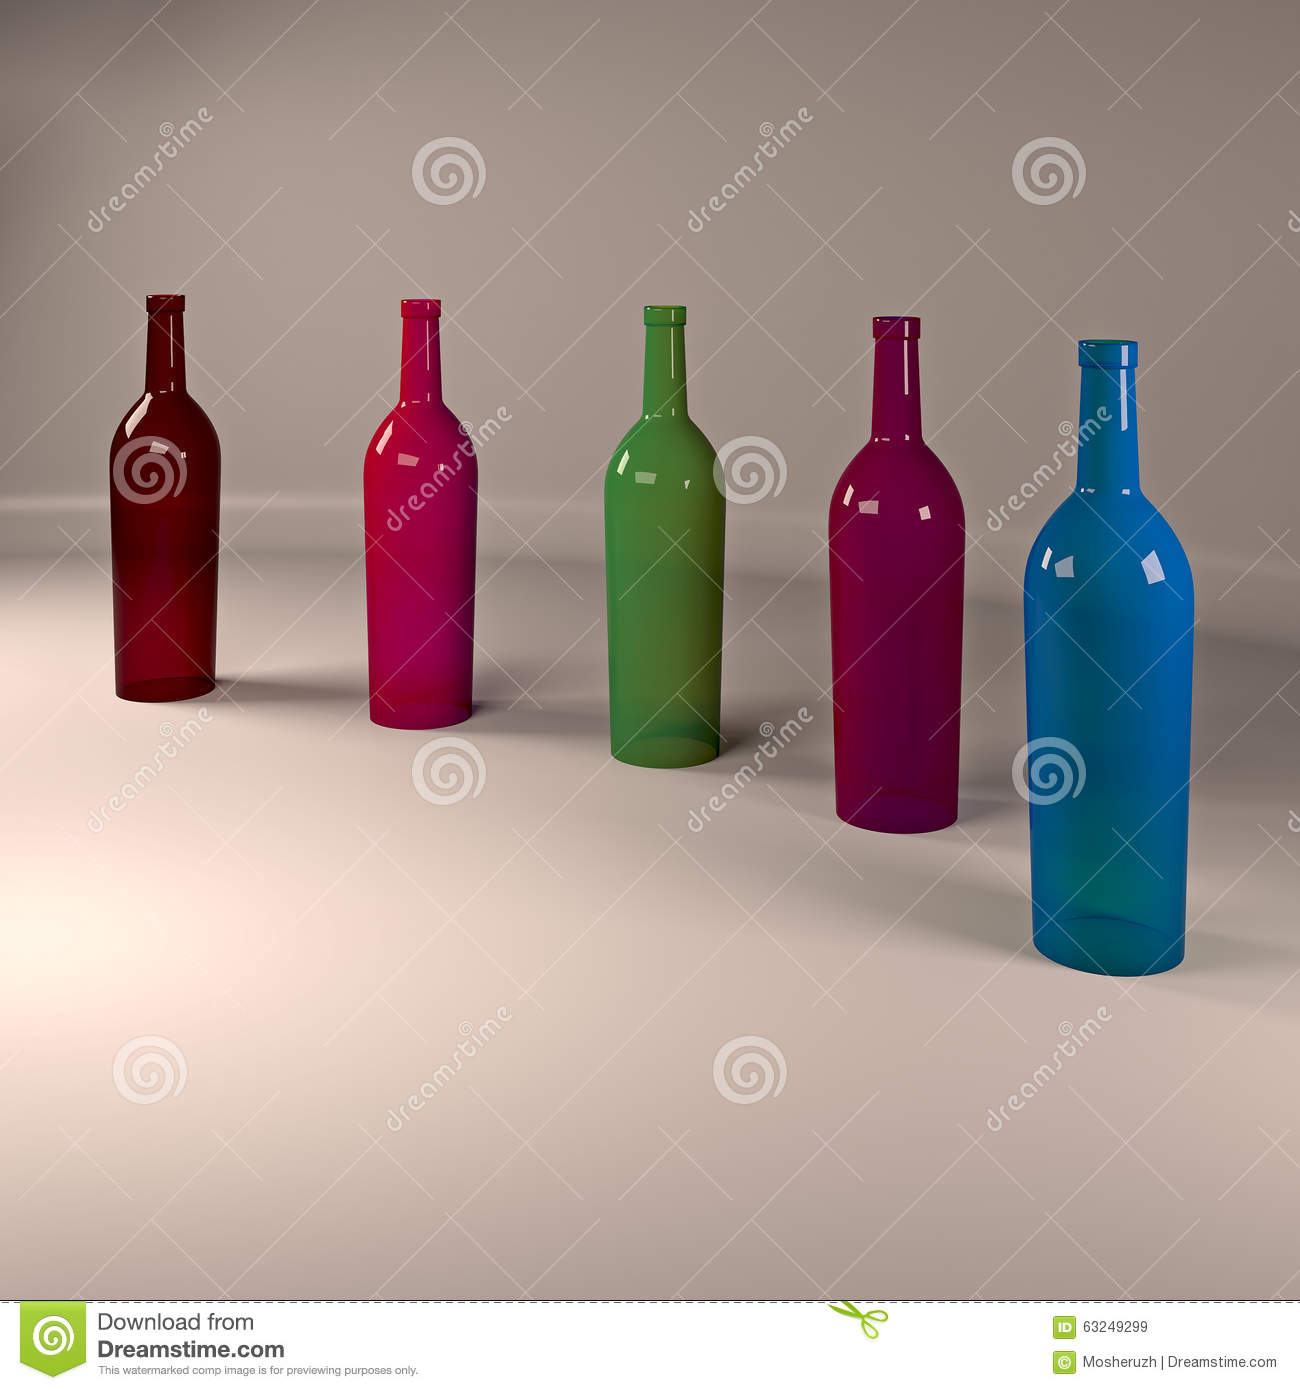 Colored bottles stock illustration image 63249299 for Where to buy colored wine bottles